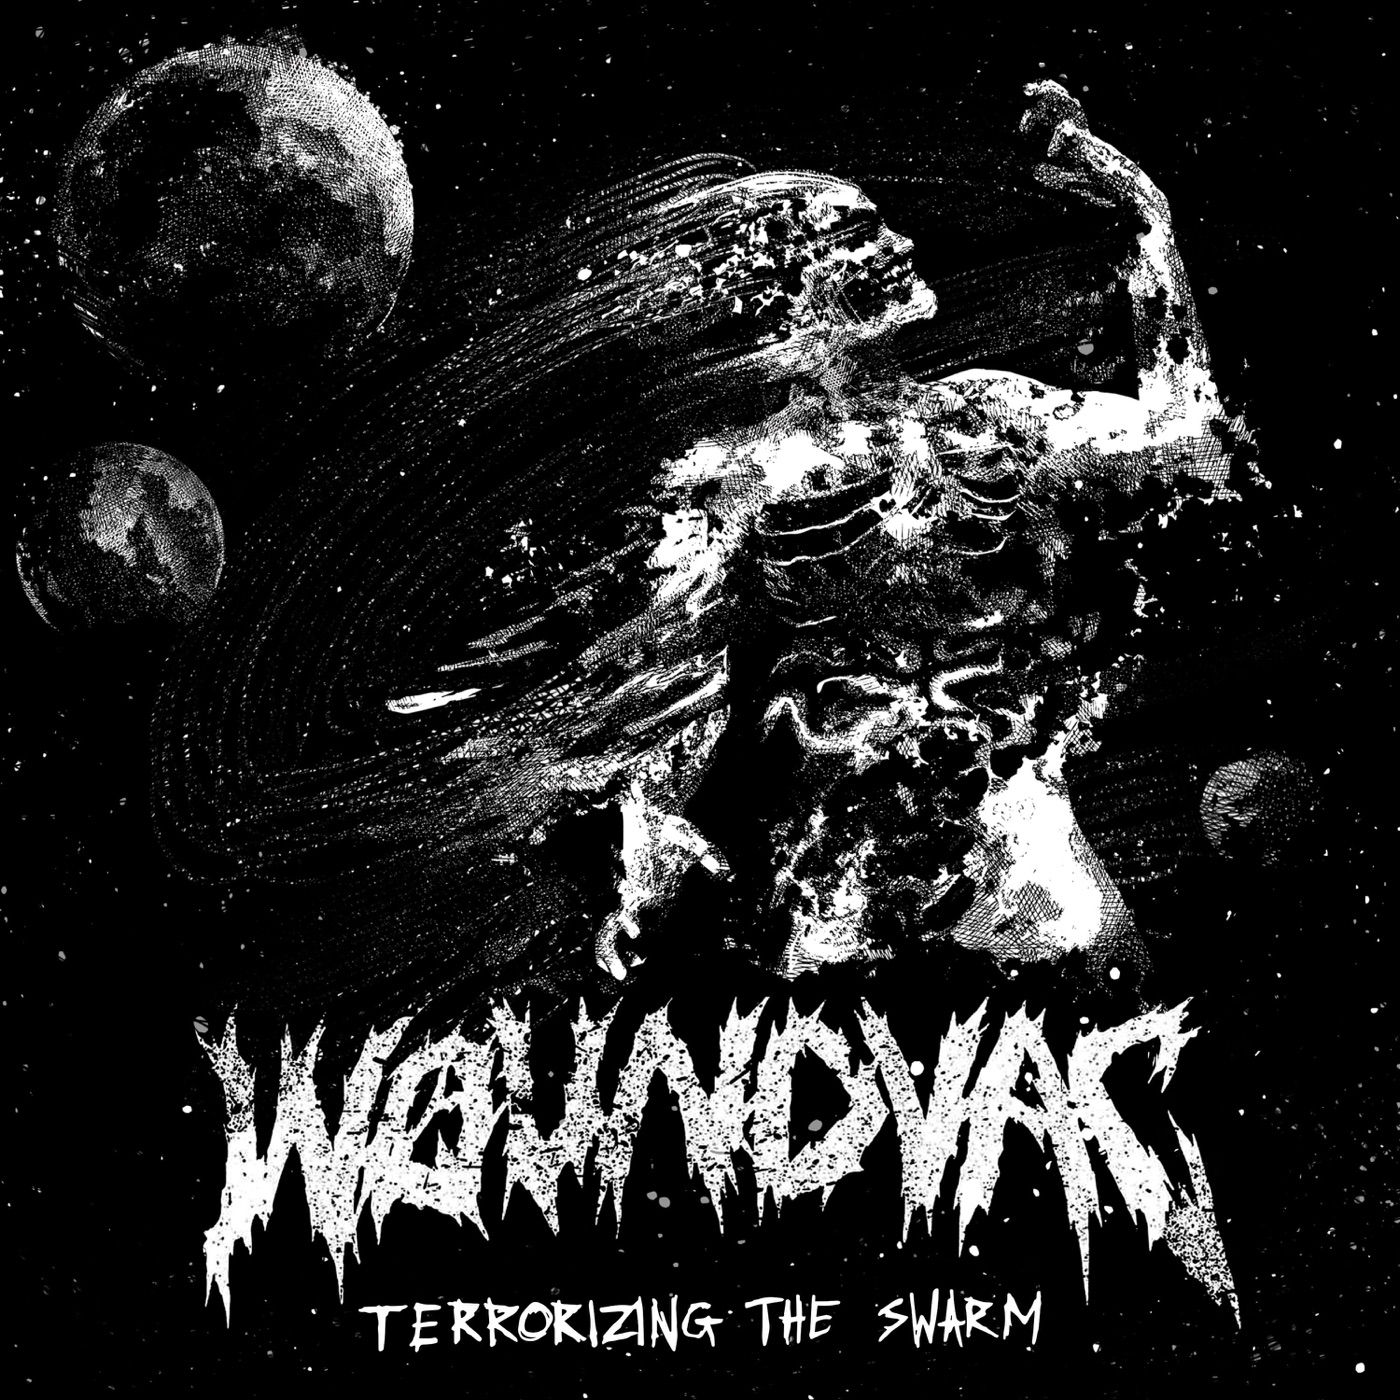 Woundvac - Terrorizing the Swarm (2018)